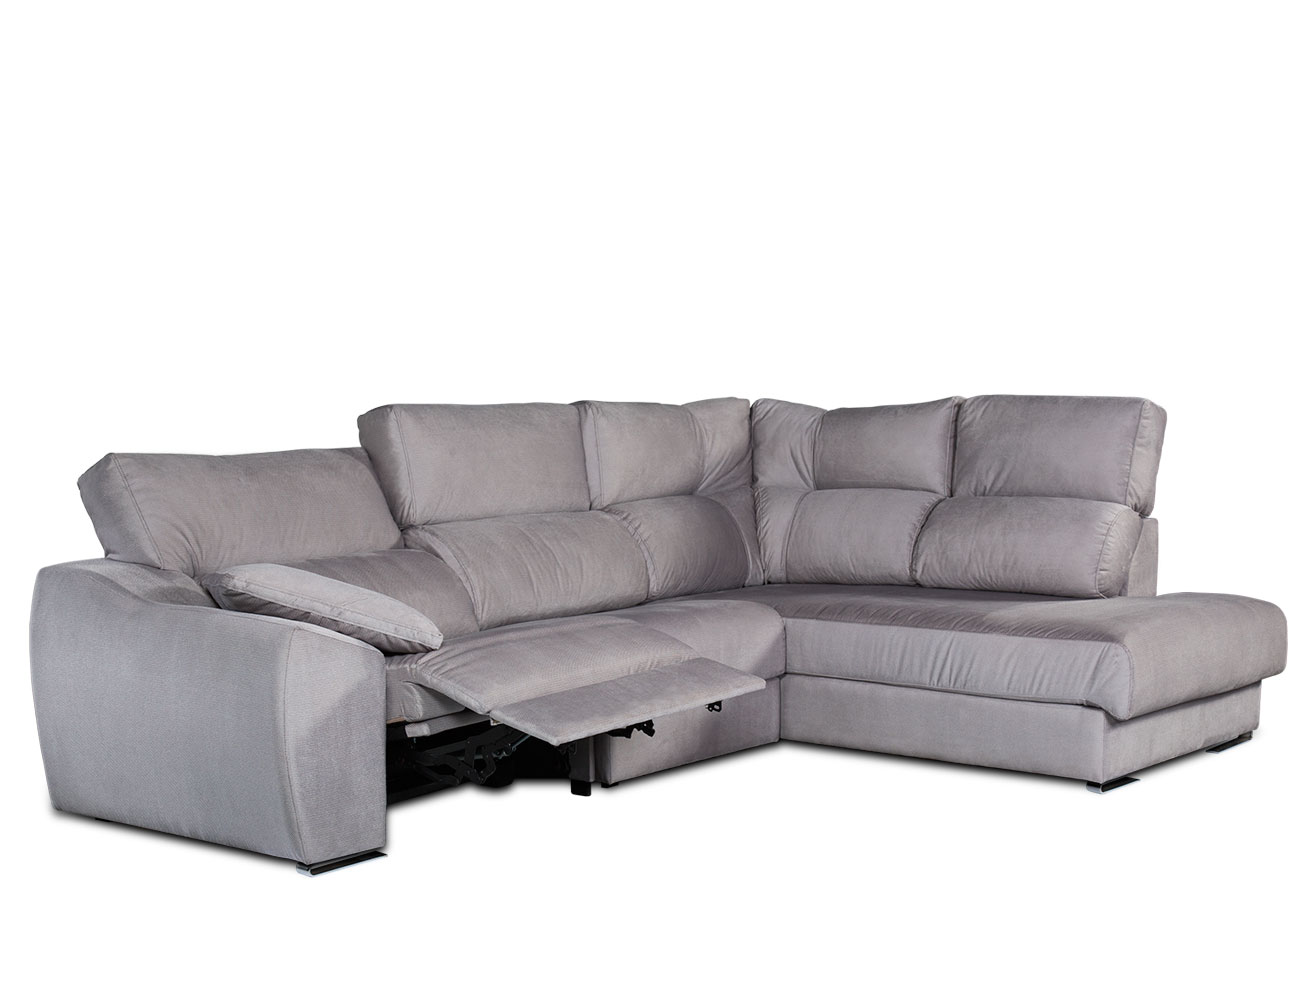 Sofa chaiselongue rincon electrico 24